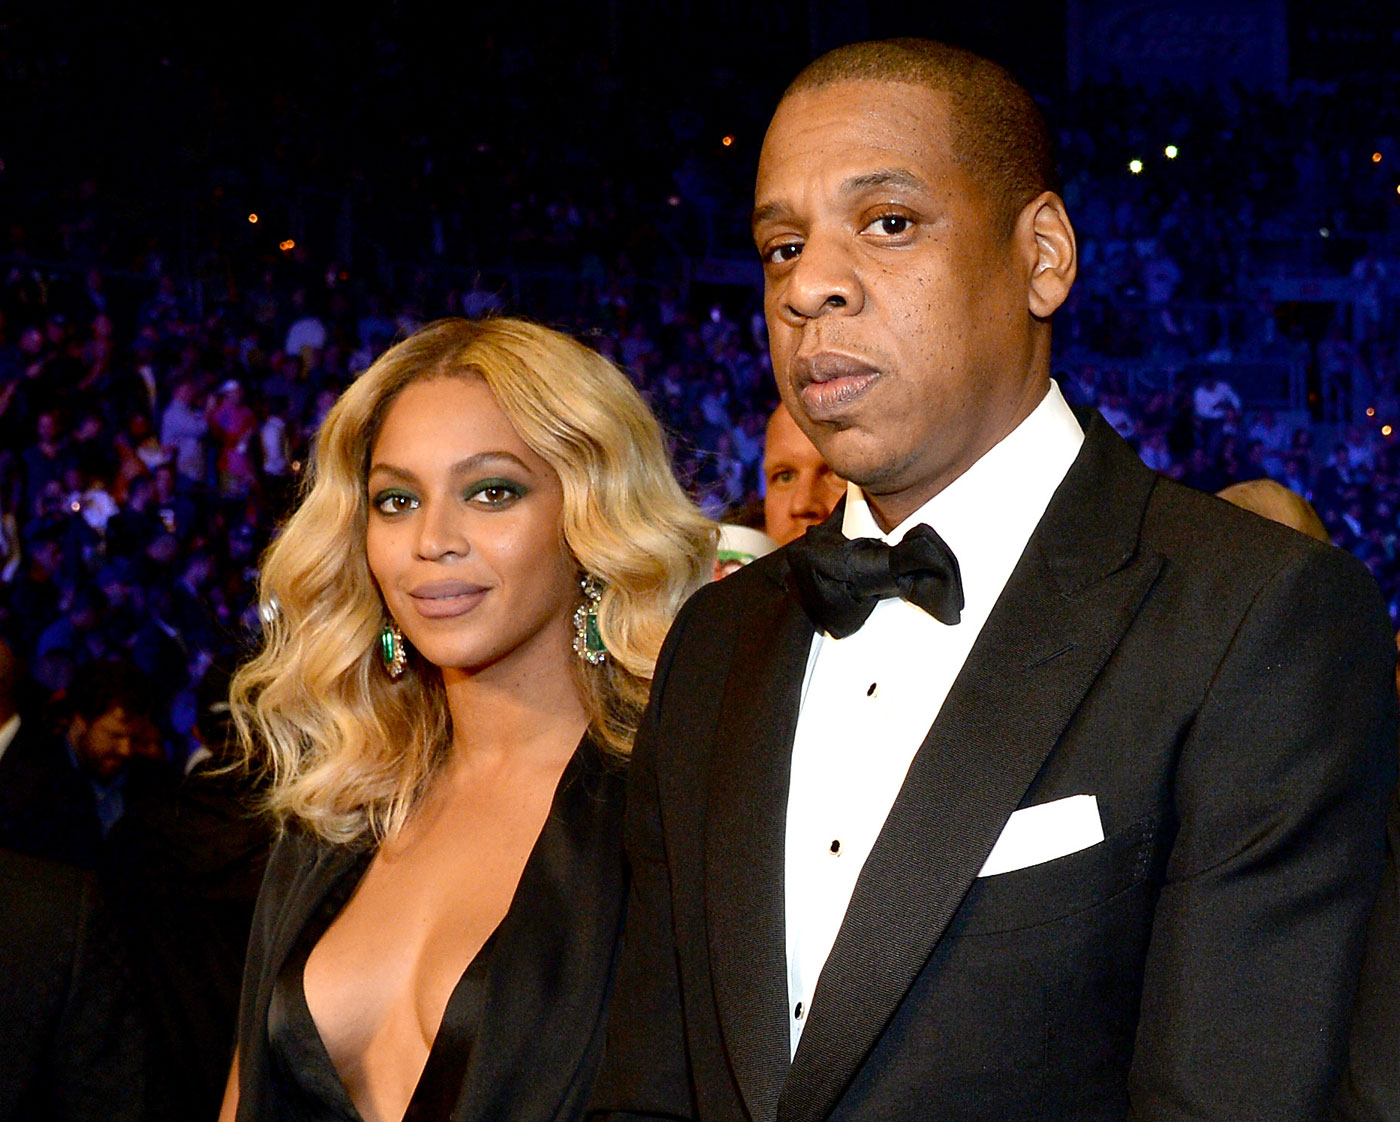 Jay Z refers to Beyonce's controversial 'Lemonade' album in a new rap